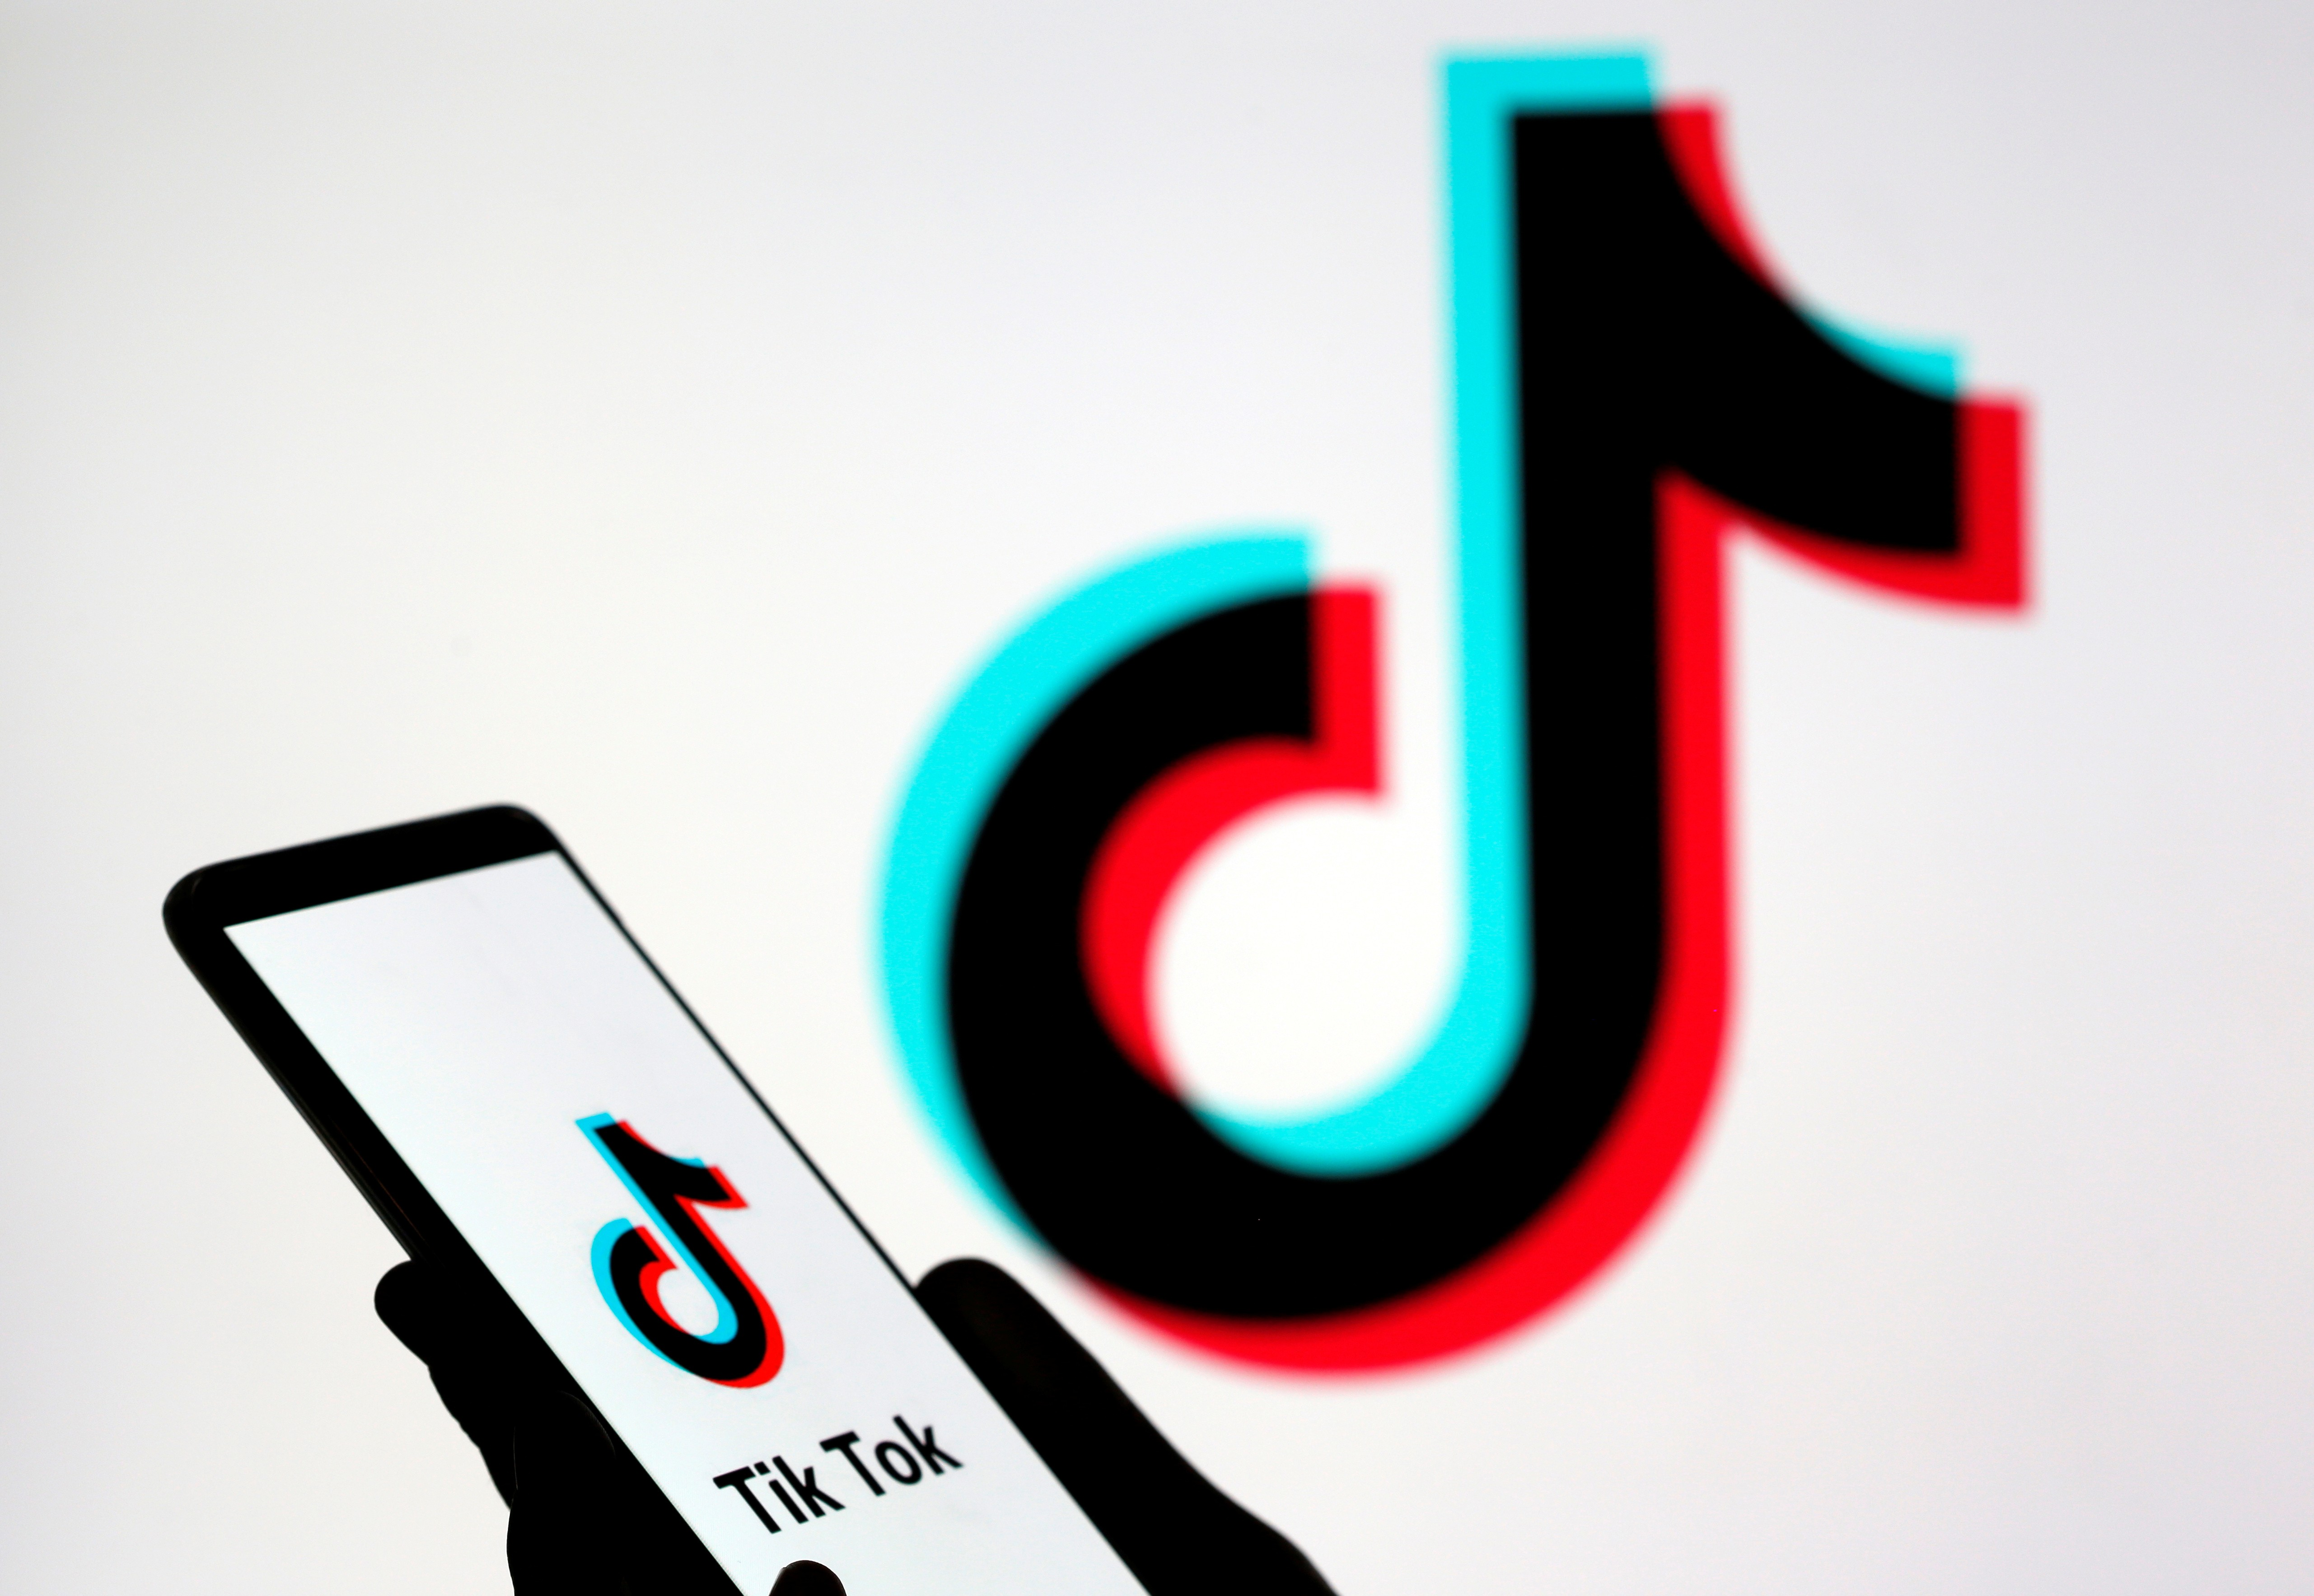 Tiktok Distances Itself From China Amid Pressure From The Us While Branching Out To Other Markets Reports South China Morning Post